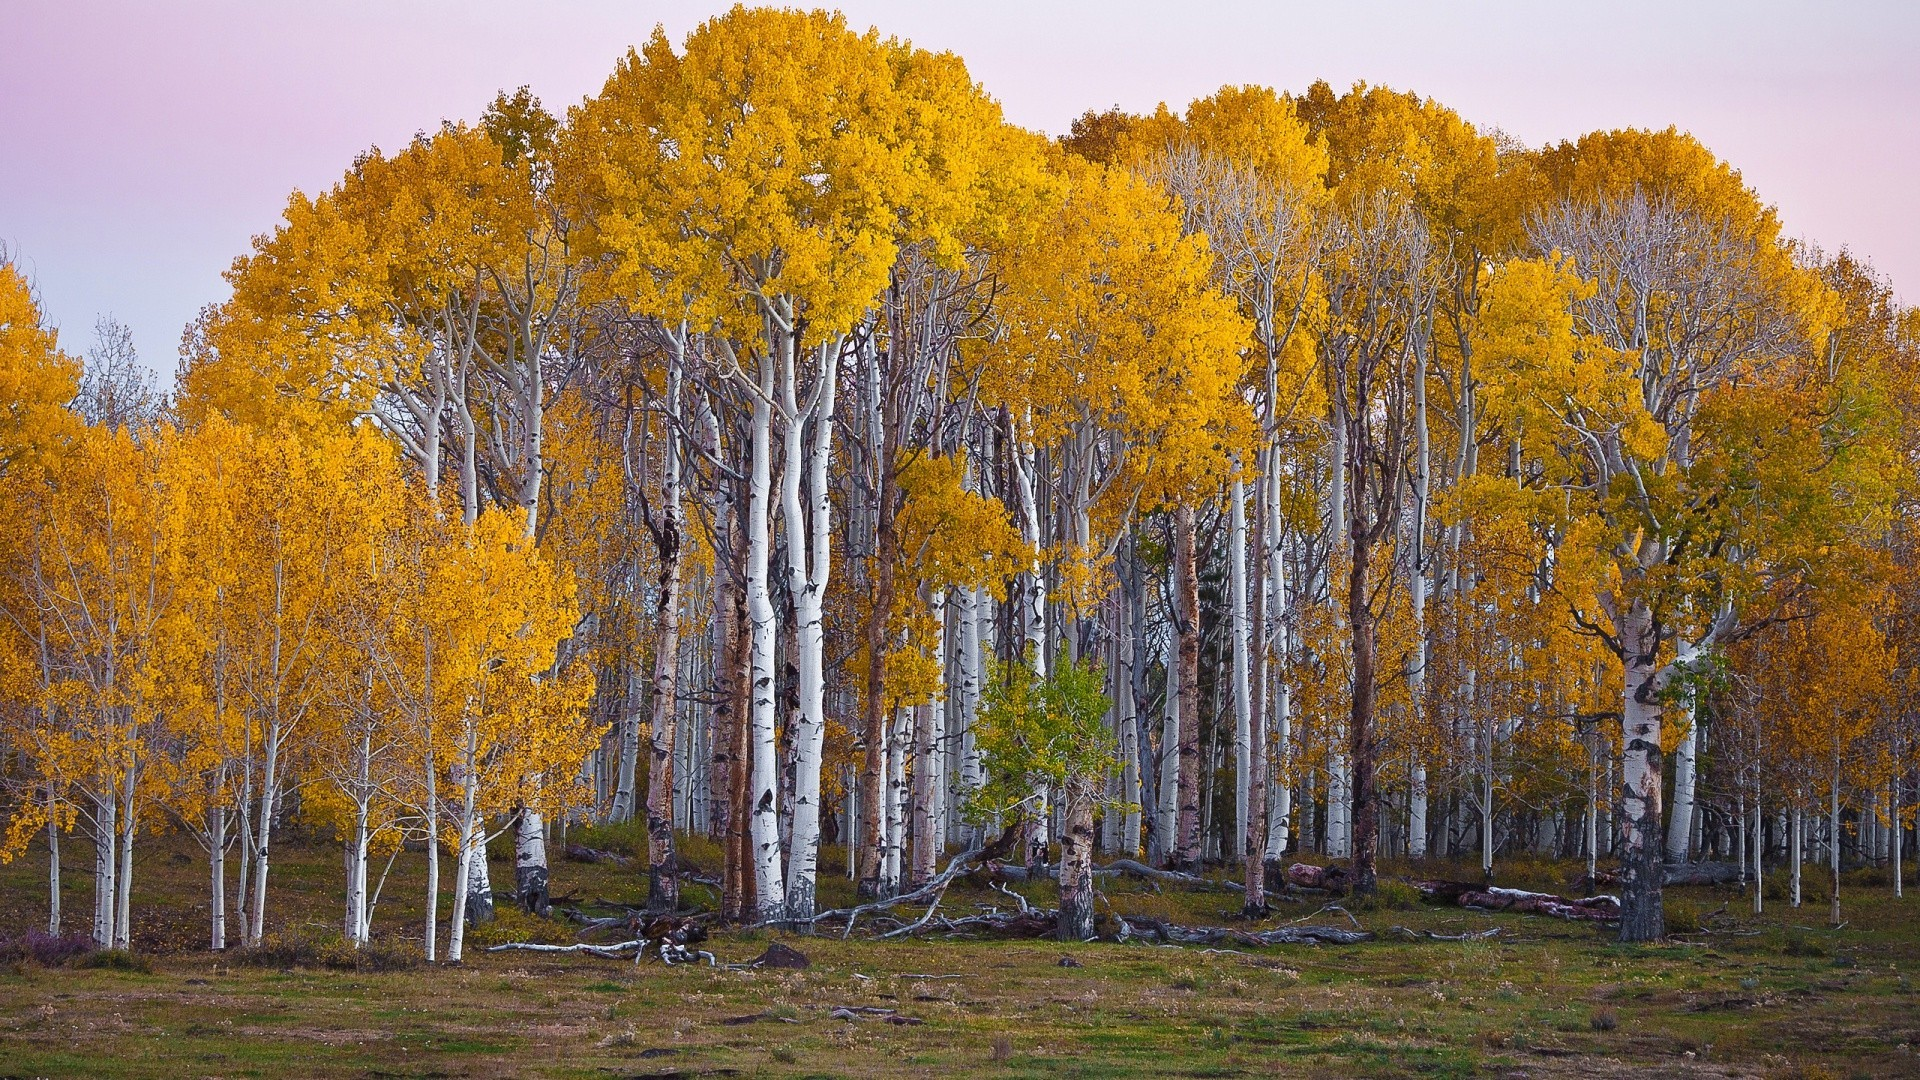 Widescreen HD wallpaper with the edge of a forest, with birch trees with white barks and orange yellow leaves in autumn